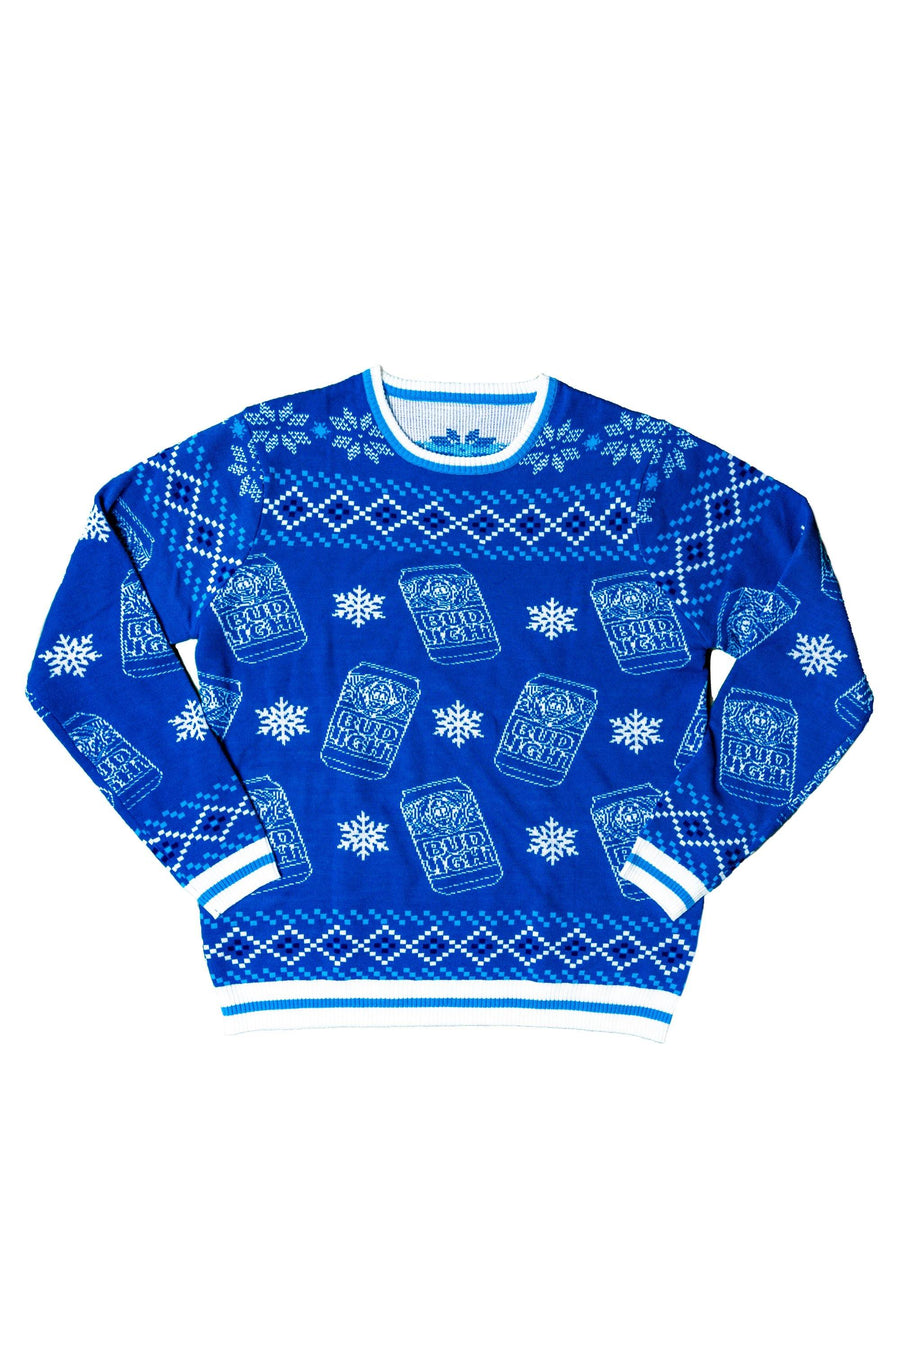 Bud Light Can Sweater